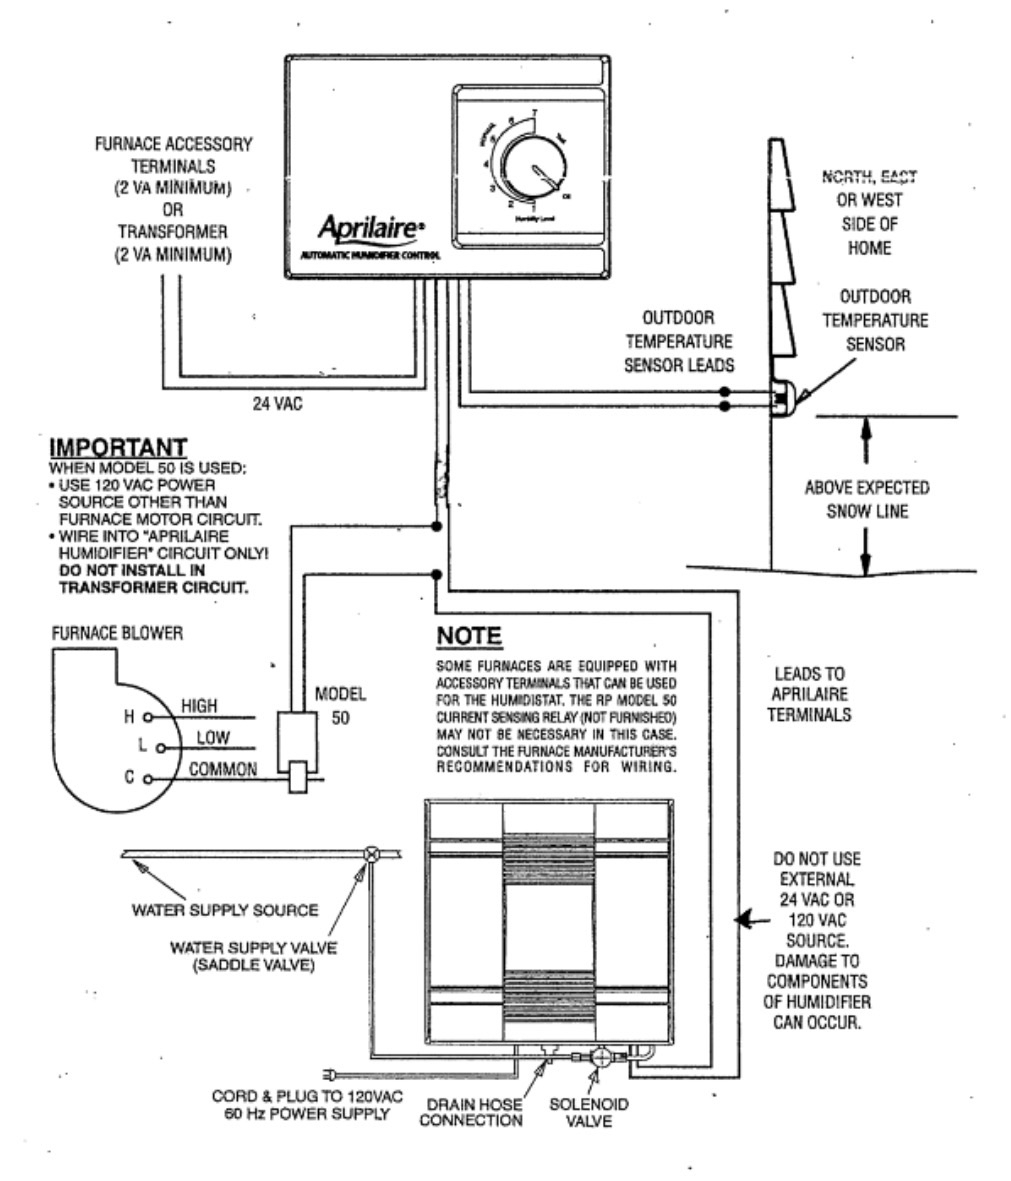 hight resolution of wiring furnace with humidifier wiring diagram review humidifier wiring for homes